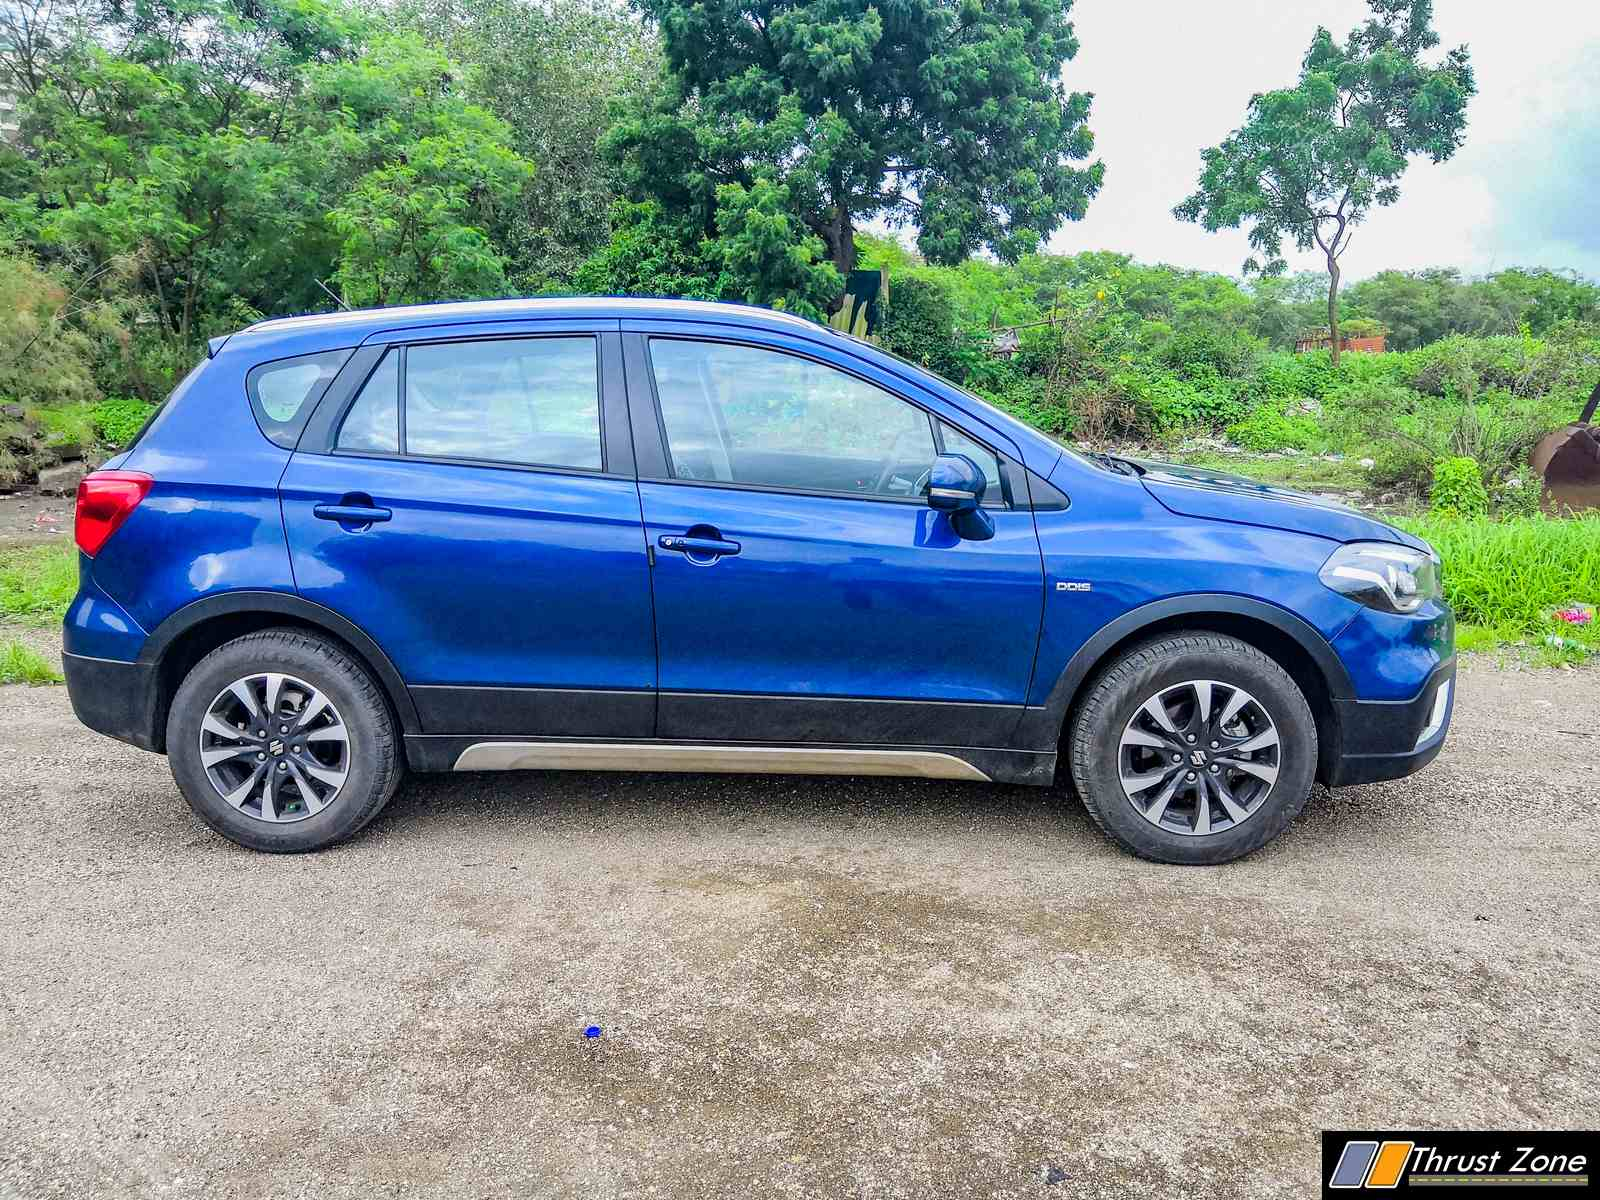 Maruti-S-cross-1.3-review-long-term